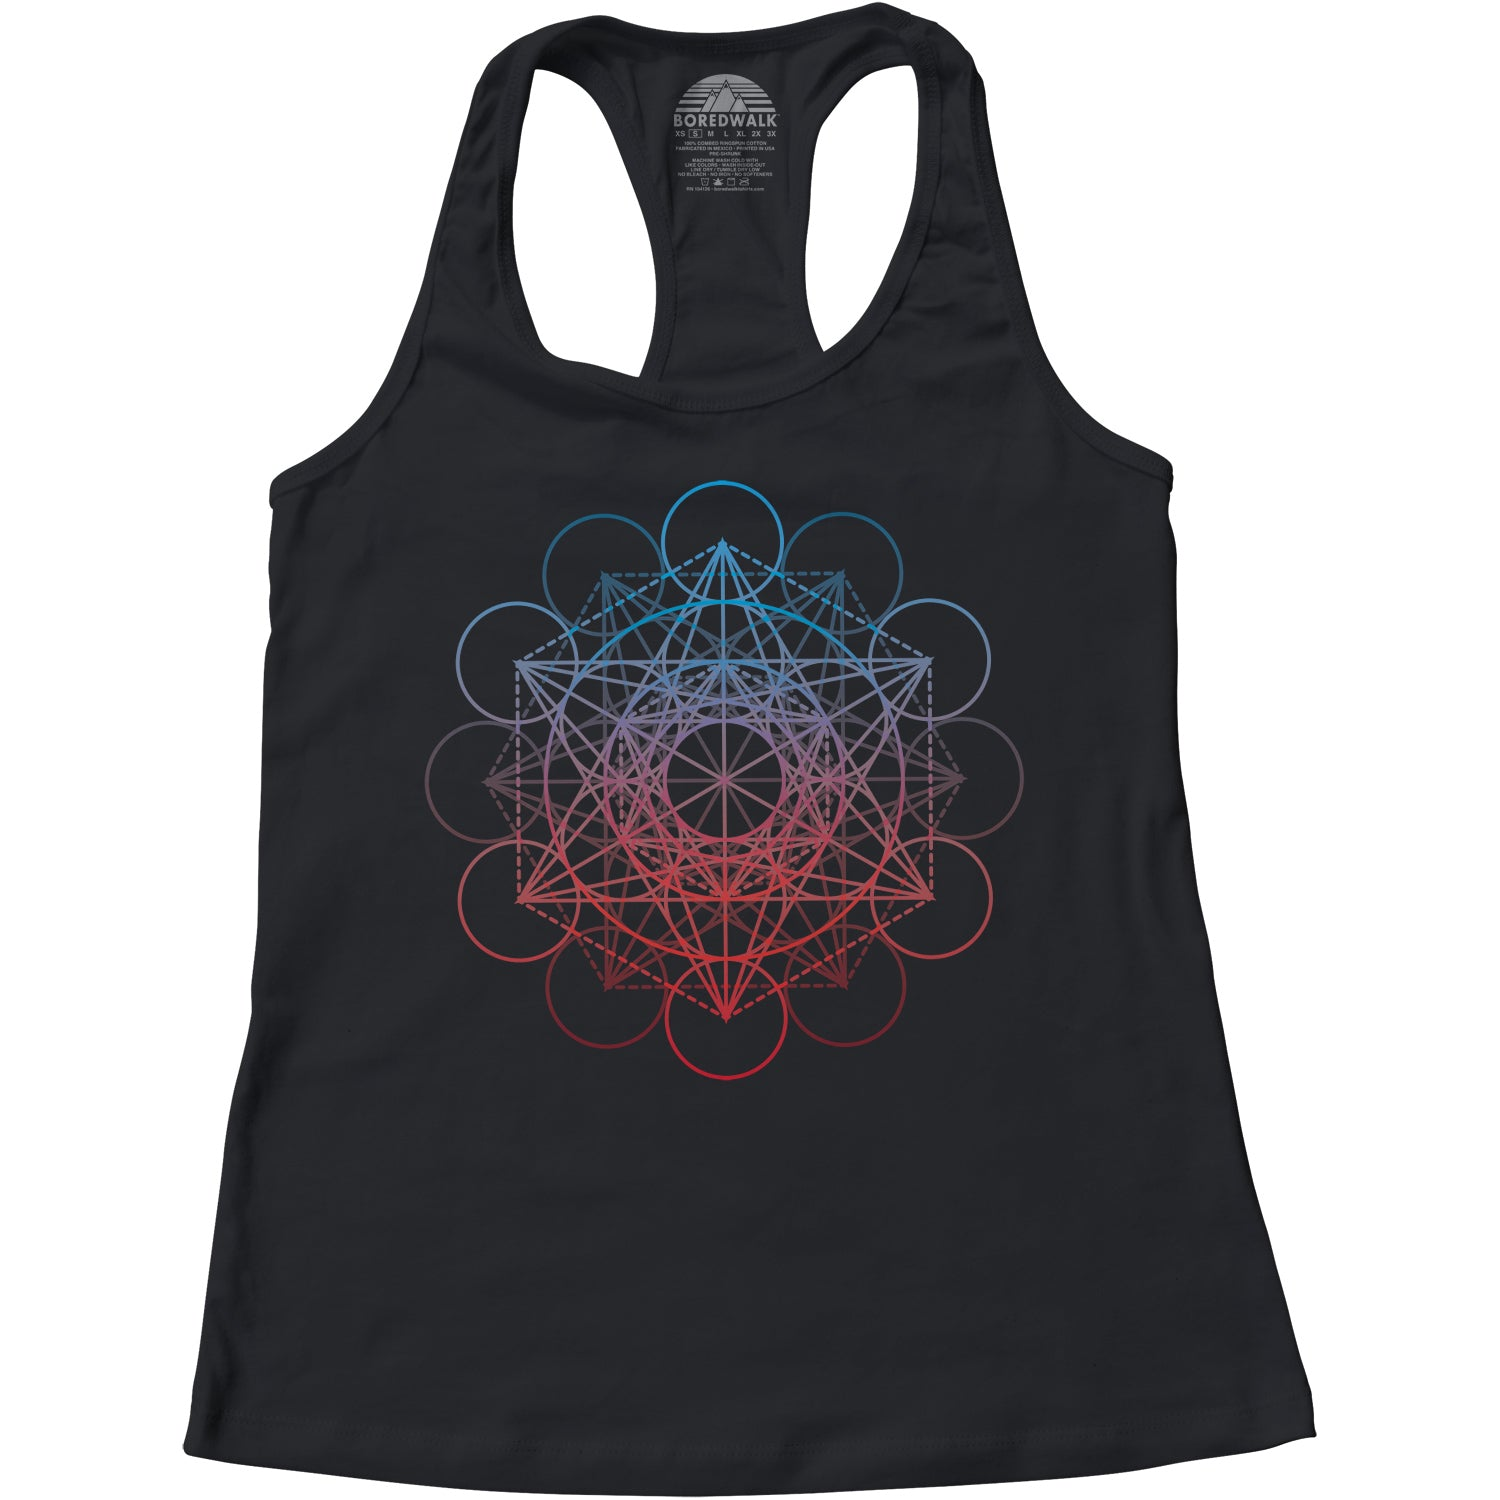 Women's Metatrons Cube Rainbow Racerback Tank Top